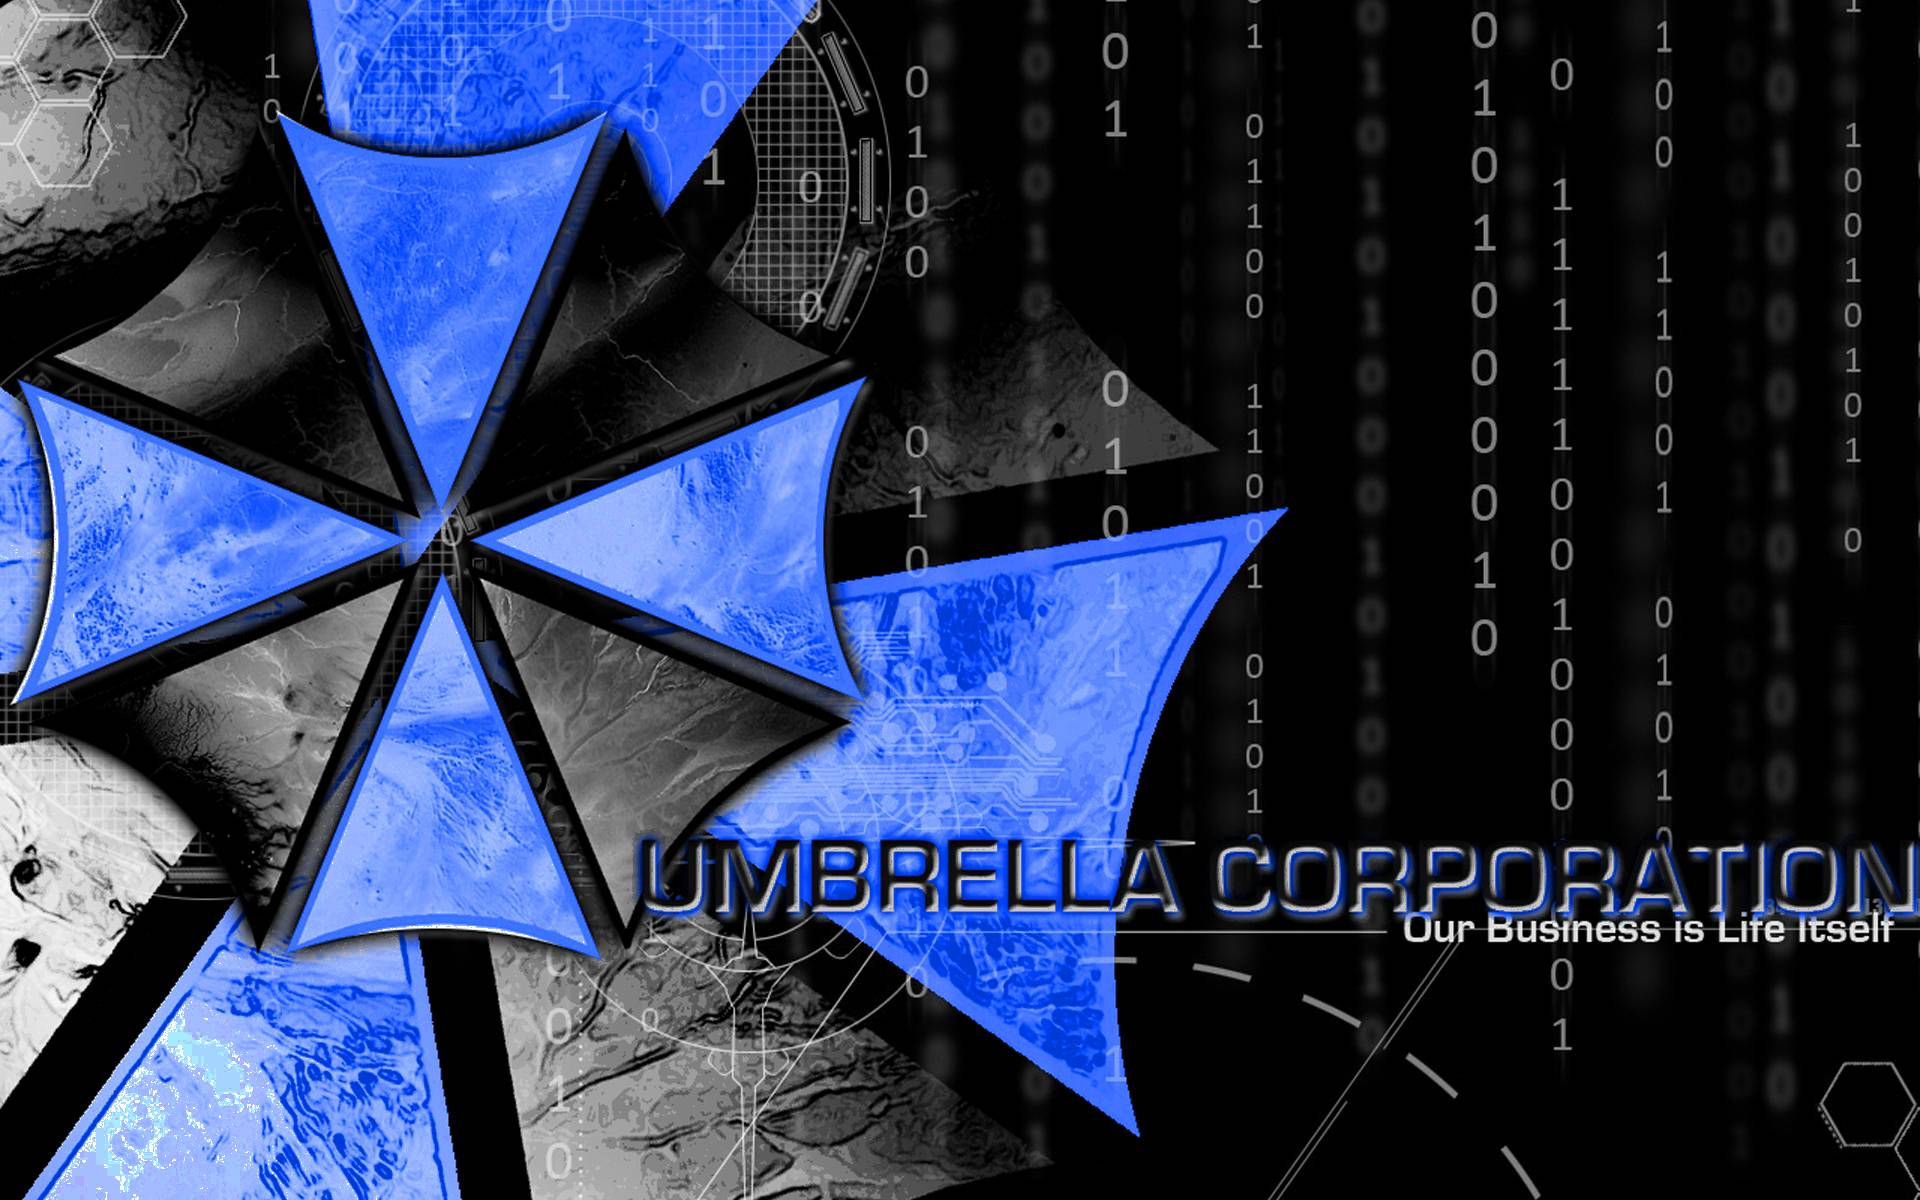 Umbrella Corporation X Movie Wallpapers